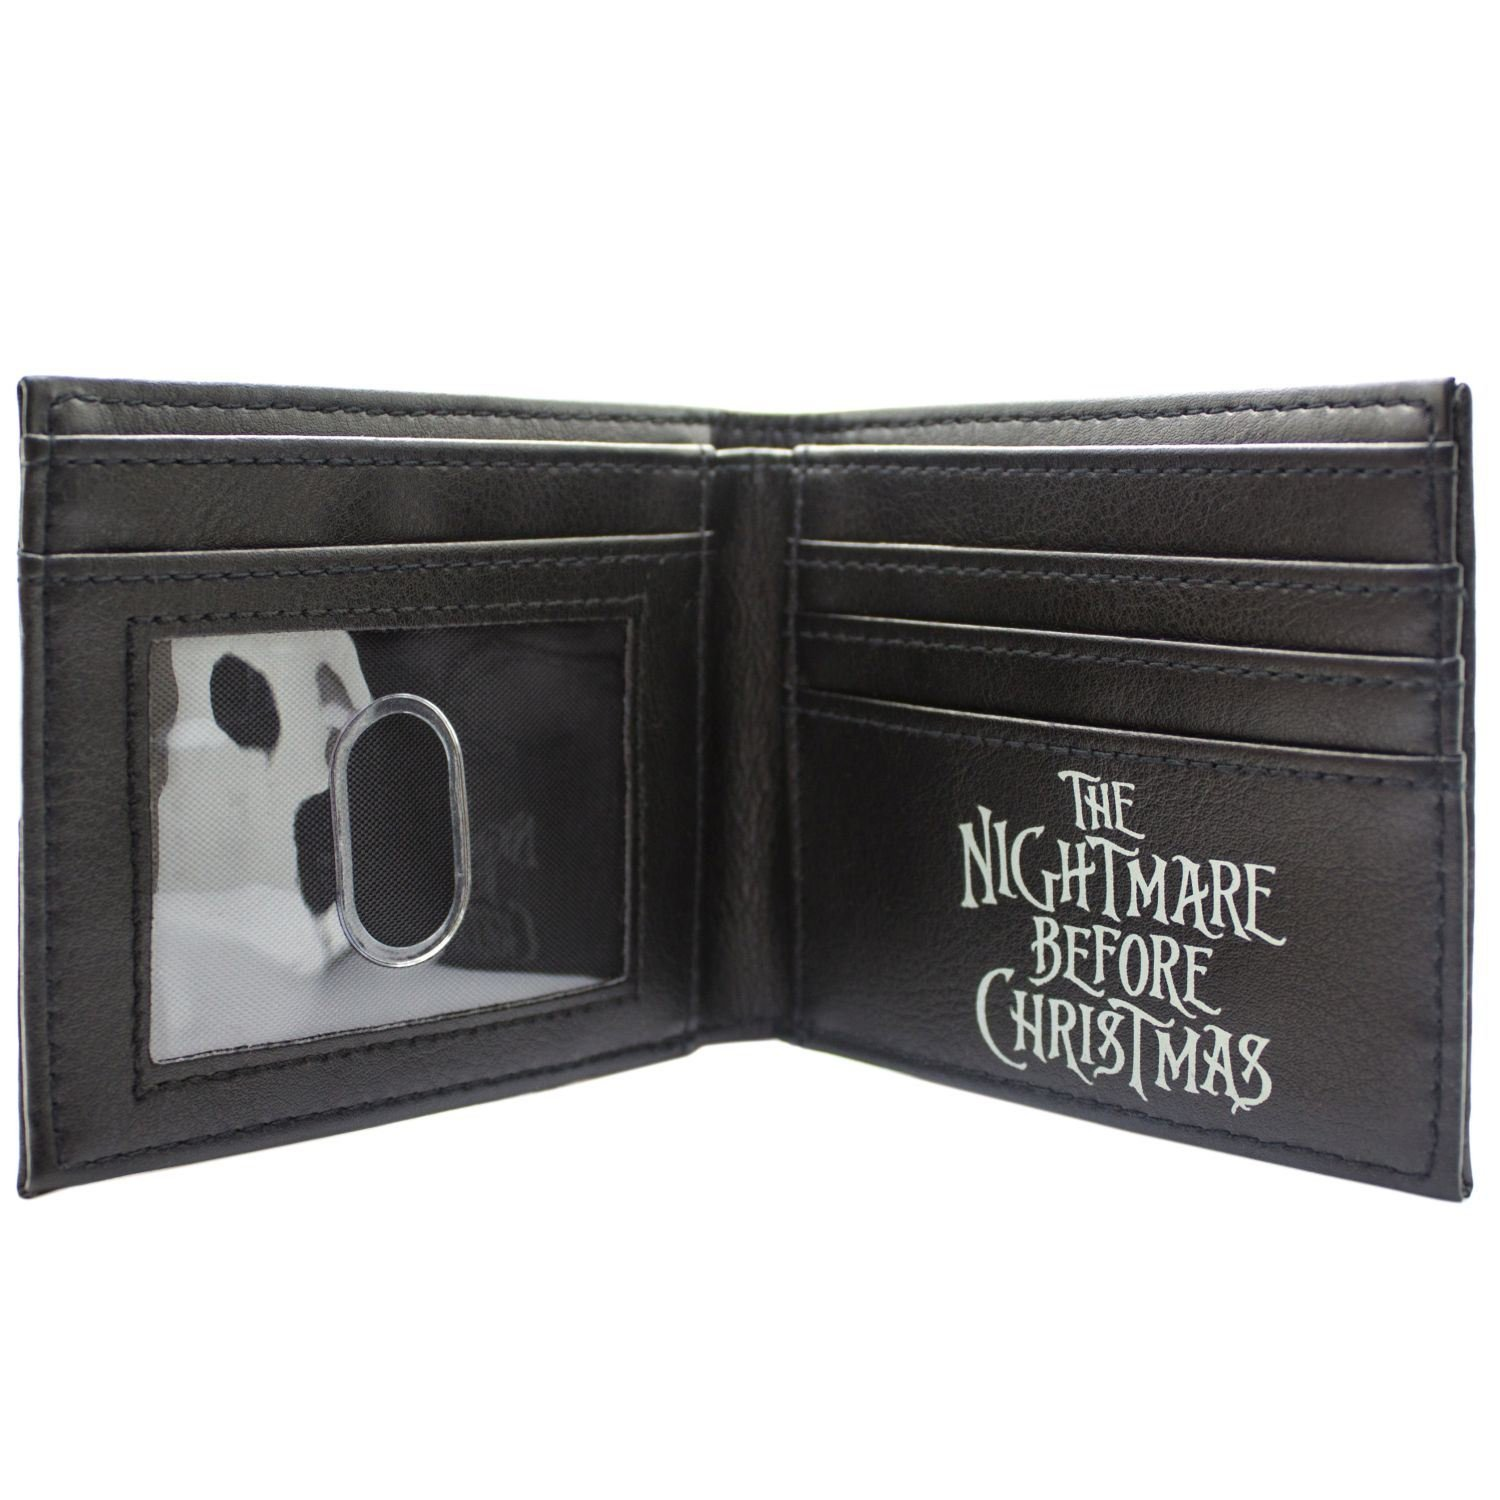 Cartera de Tim Burton Nightmare Before Christmas En relieve ...